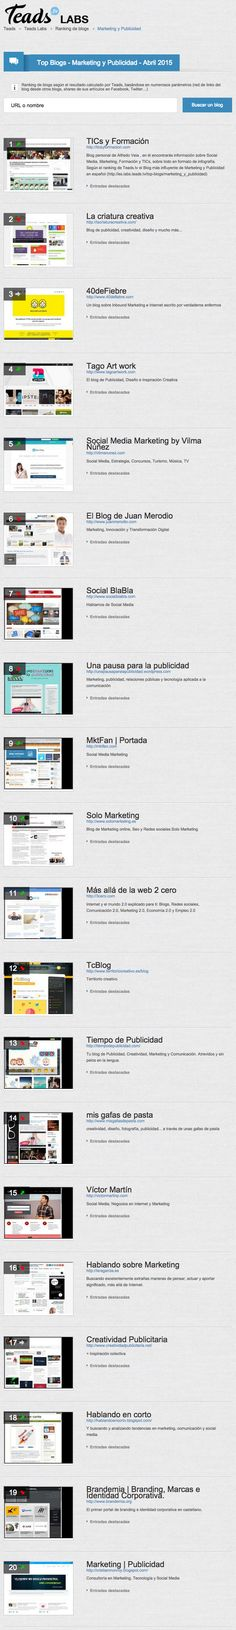 21 Whats App Ads Ideas Infographic Marketing Mobile Marketing Social Media Infographic